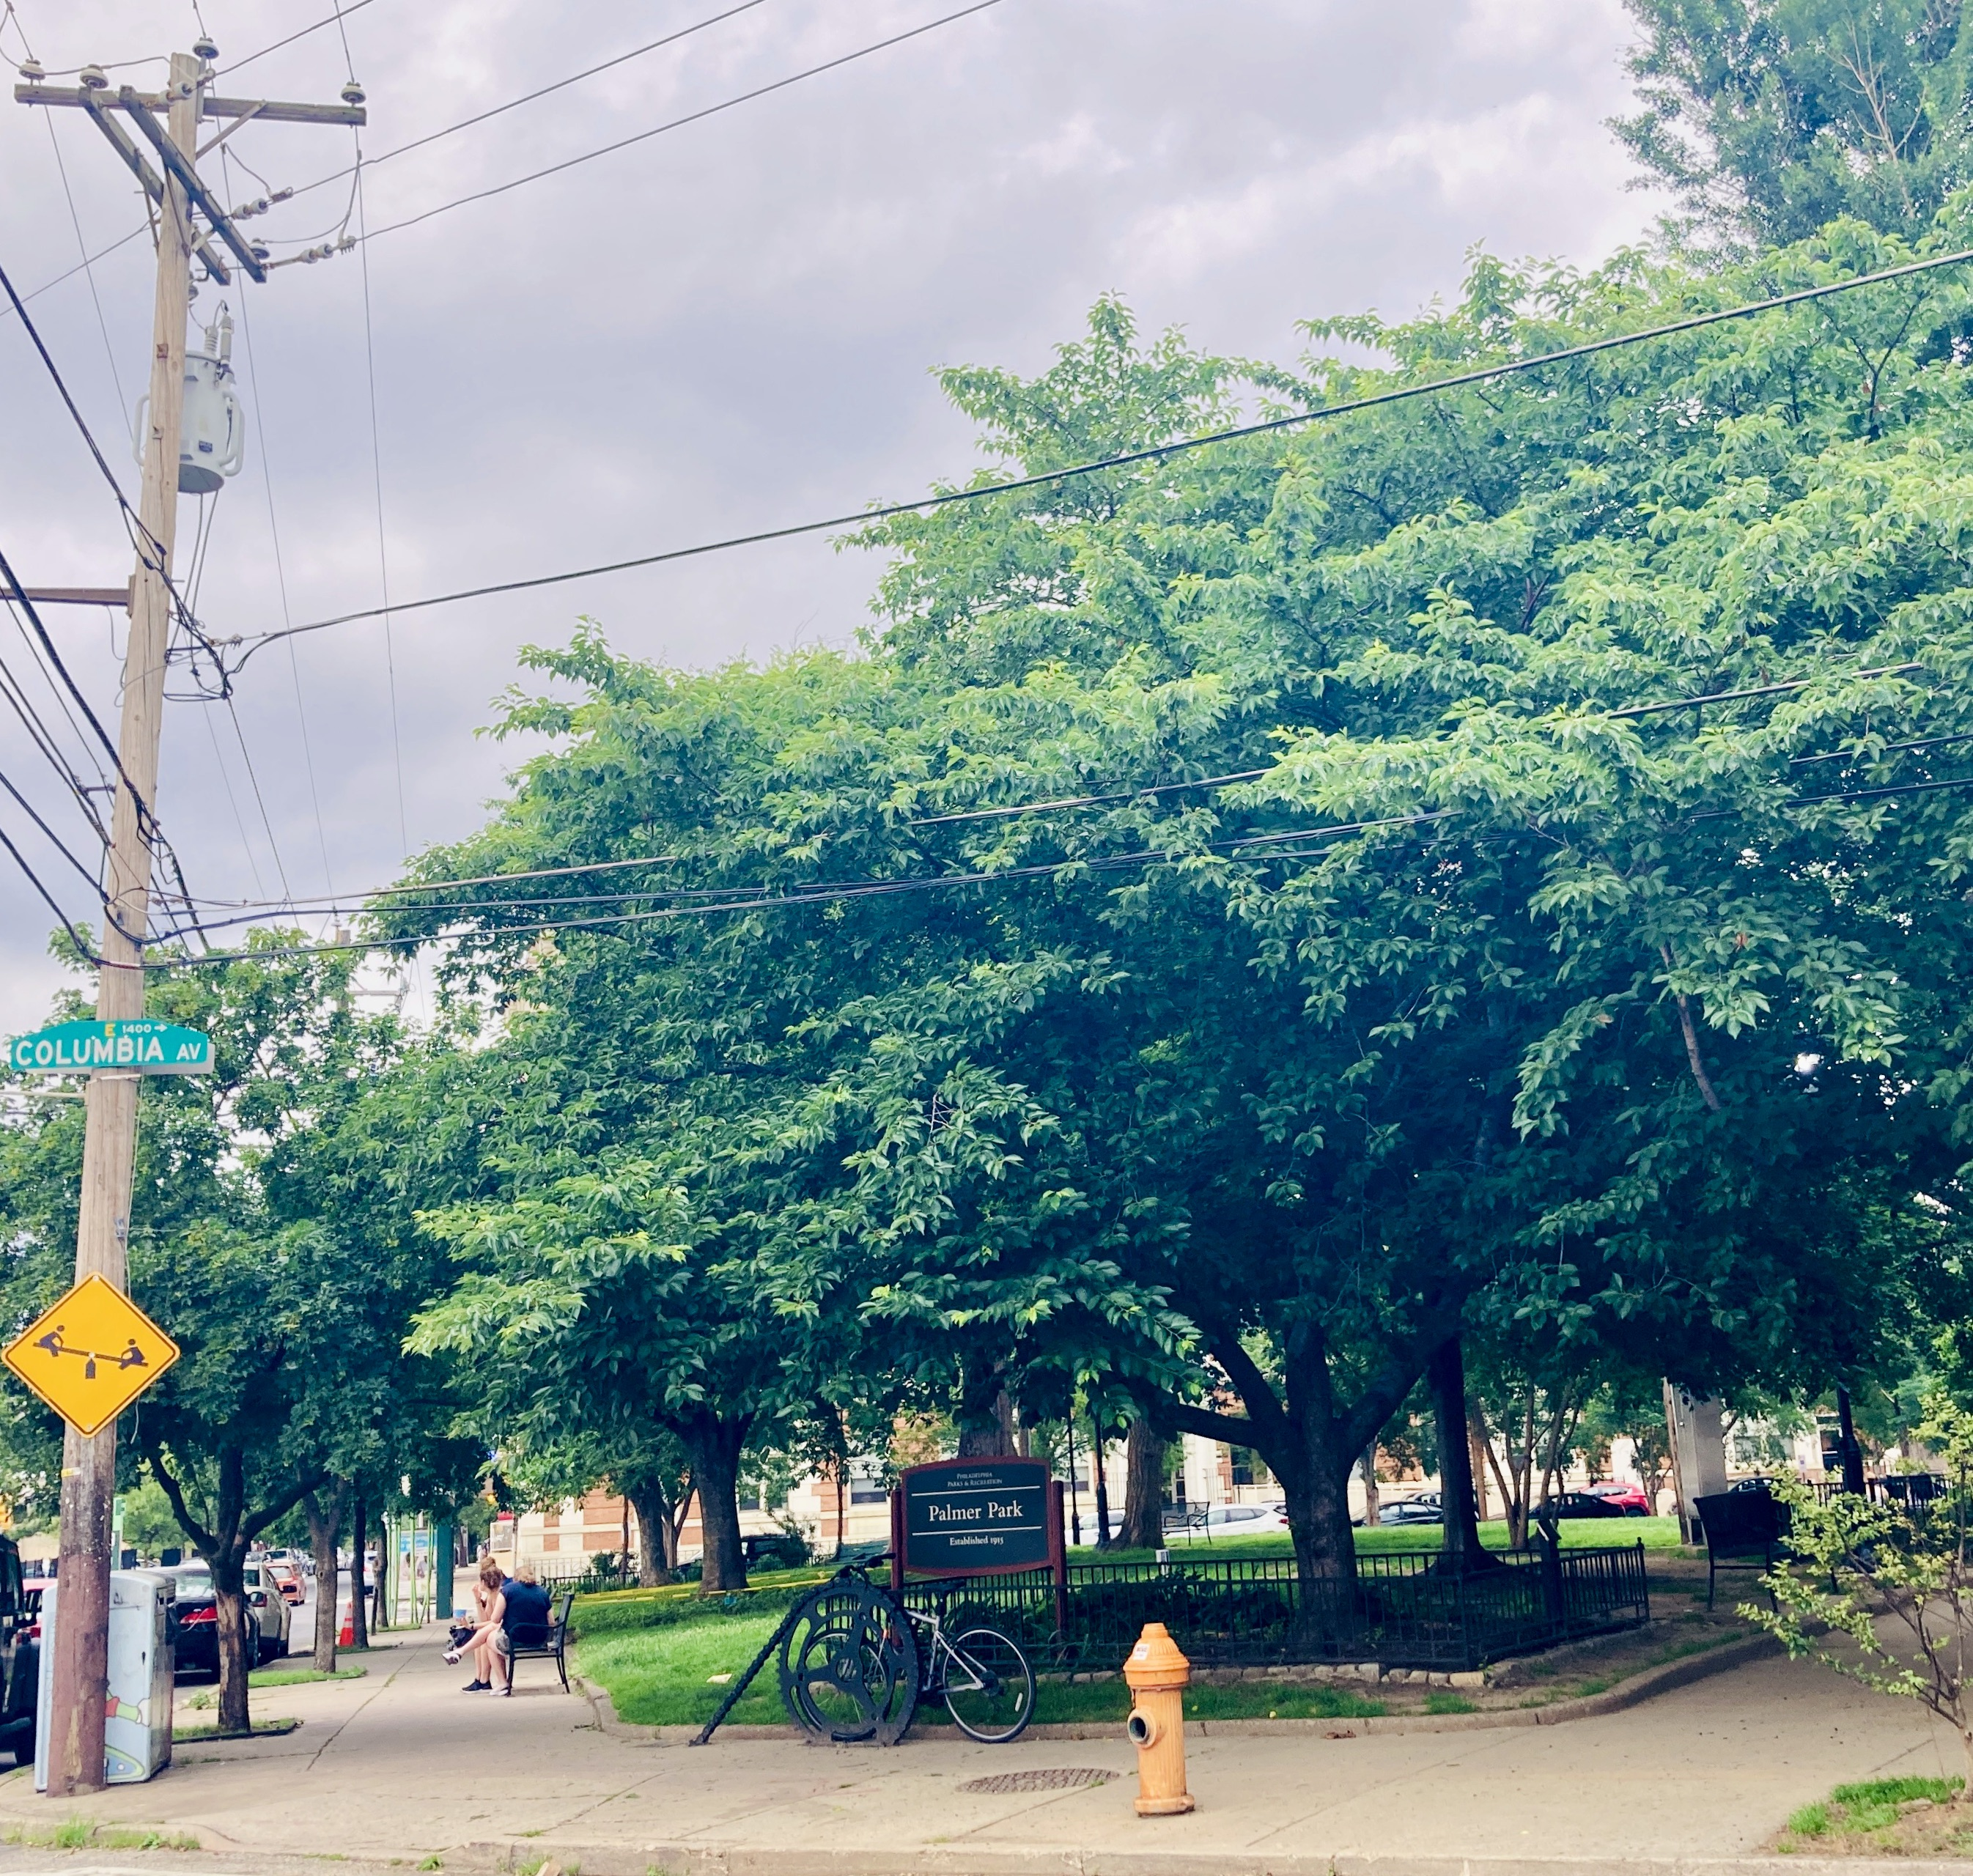 Palmer Park on Columbia Ave